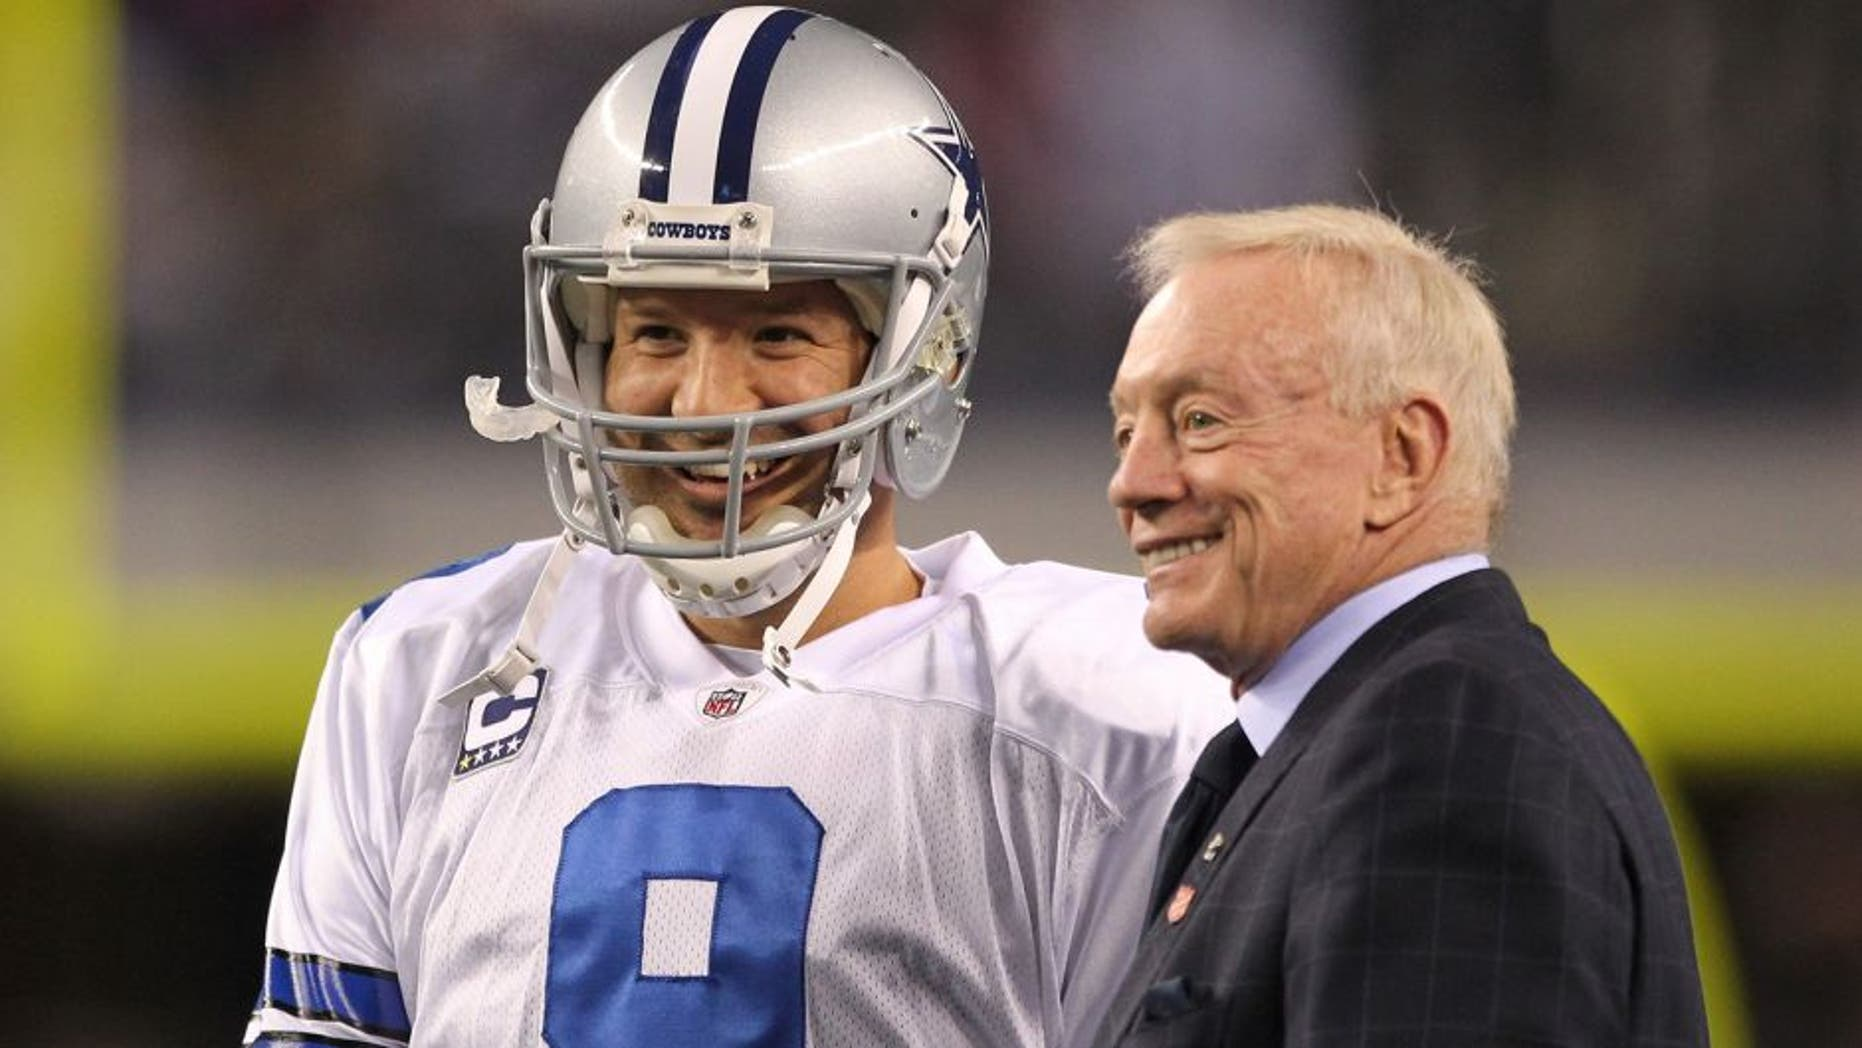 Dec 11, 2011; Dallas, TX, USA; Dallas Cowboys quarterback Tony Romo (9) meets with owner Jerry Jones prior to the game against the New York Giants at Cowboys Stadium. Mandatory Credit: Richard Rowe-USA TODAY Sports